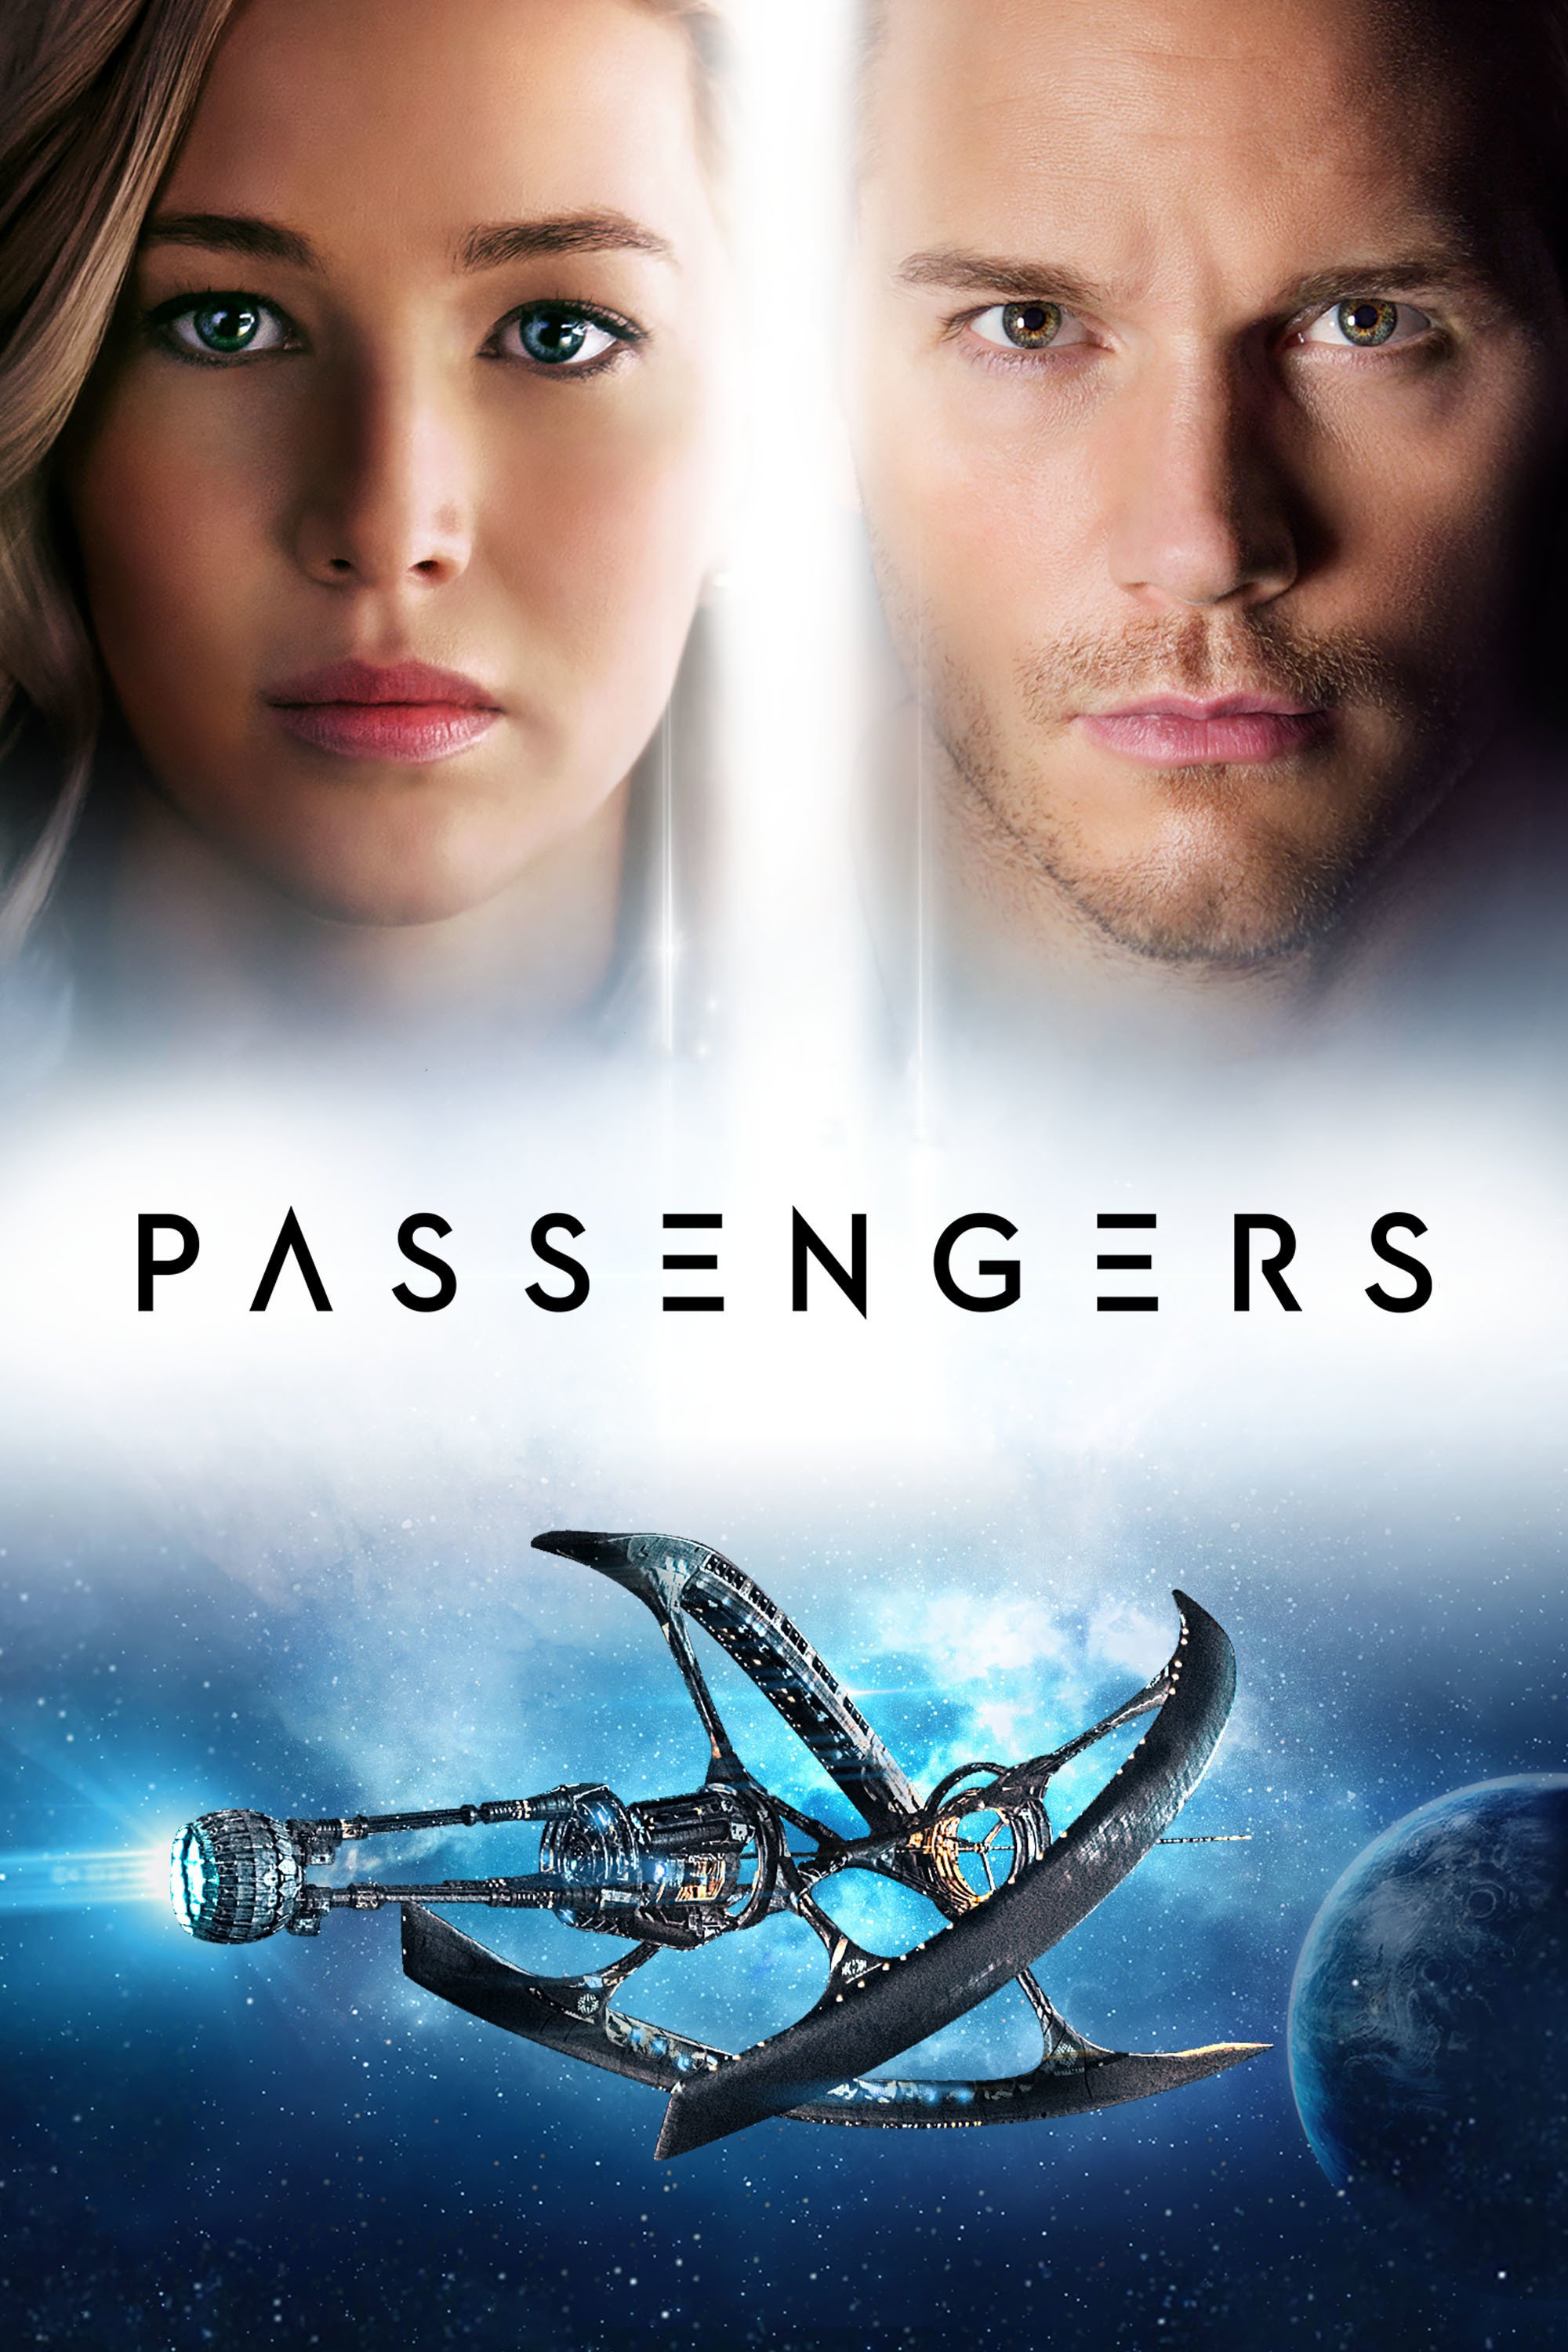 In defense of passengers timothy johnson for Passengers spaceship